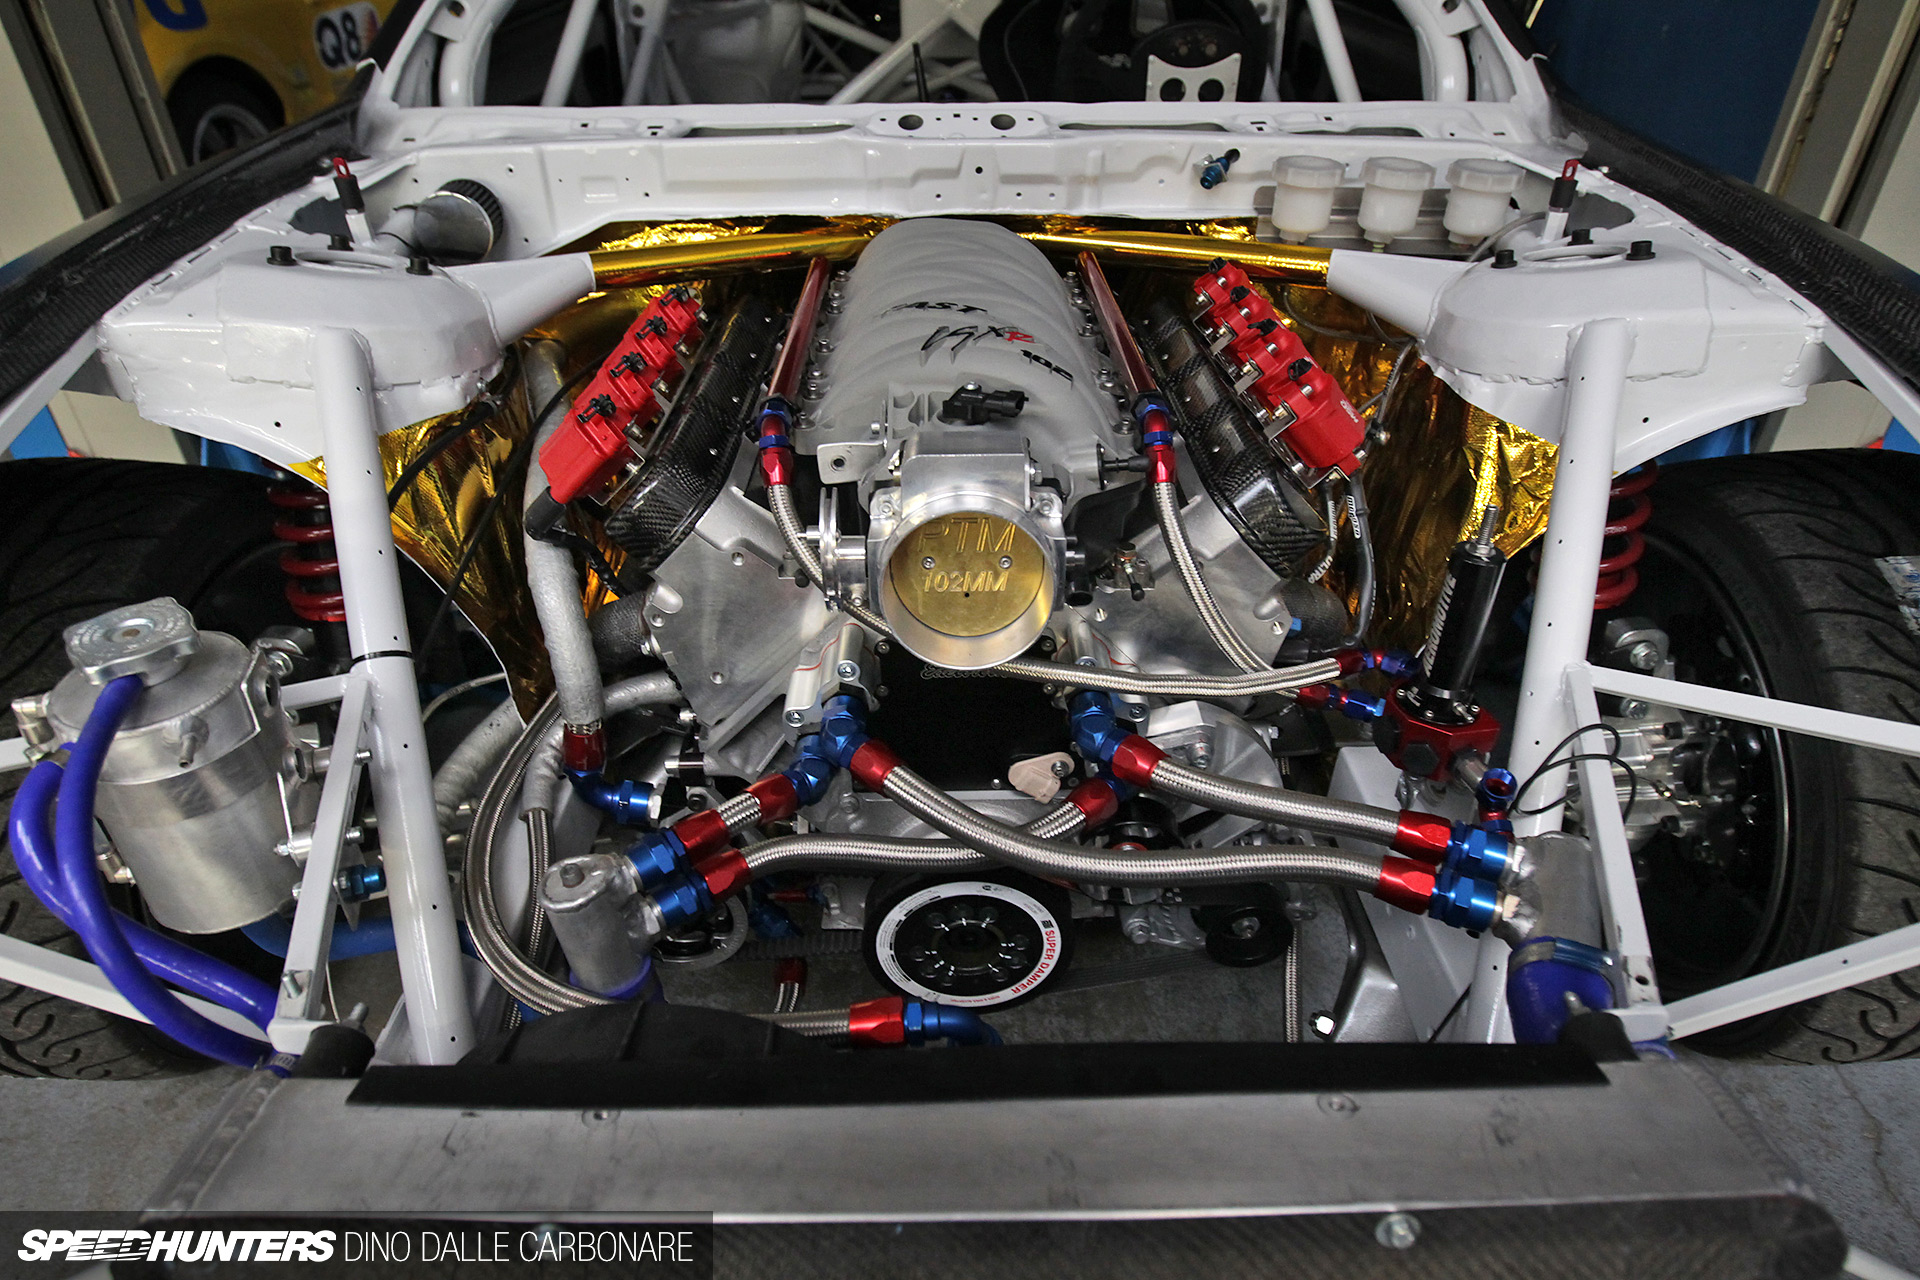 Honda Dream Wiring Diagram V8 Swapping Choose Your Weapon Speedhunters